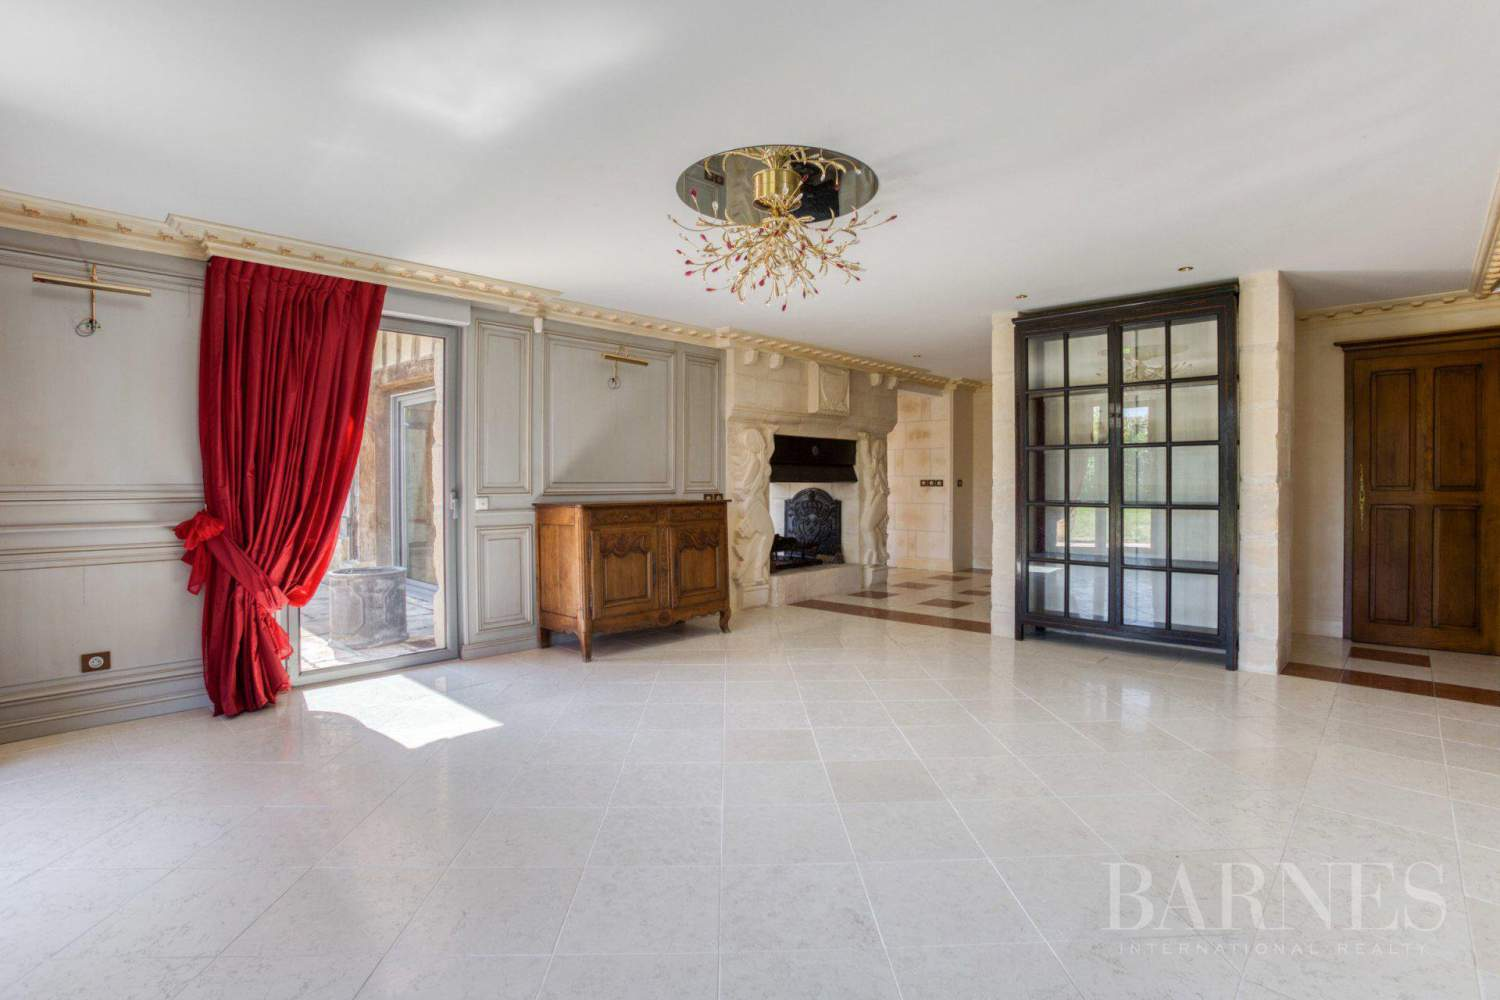 For sale - Charming and high-quality property - Close to Deauville picture 9